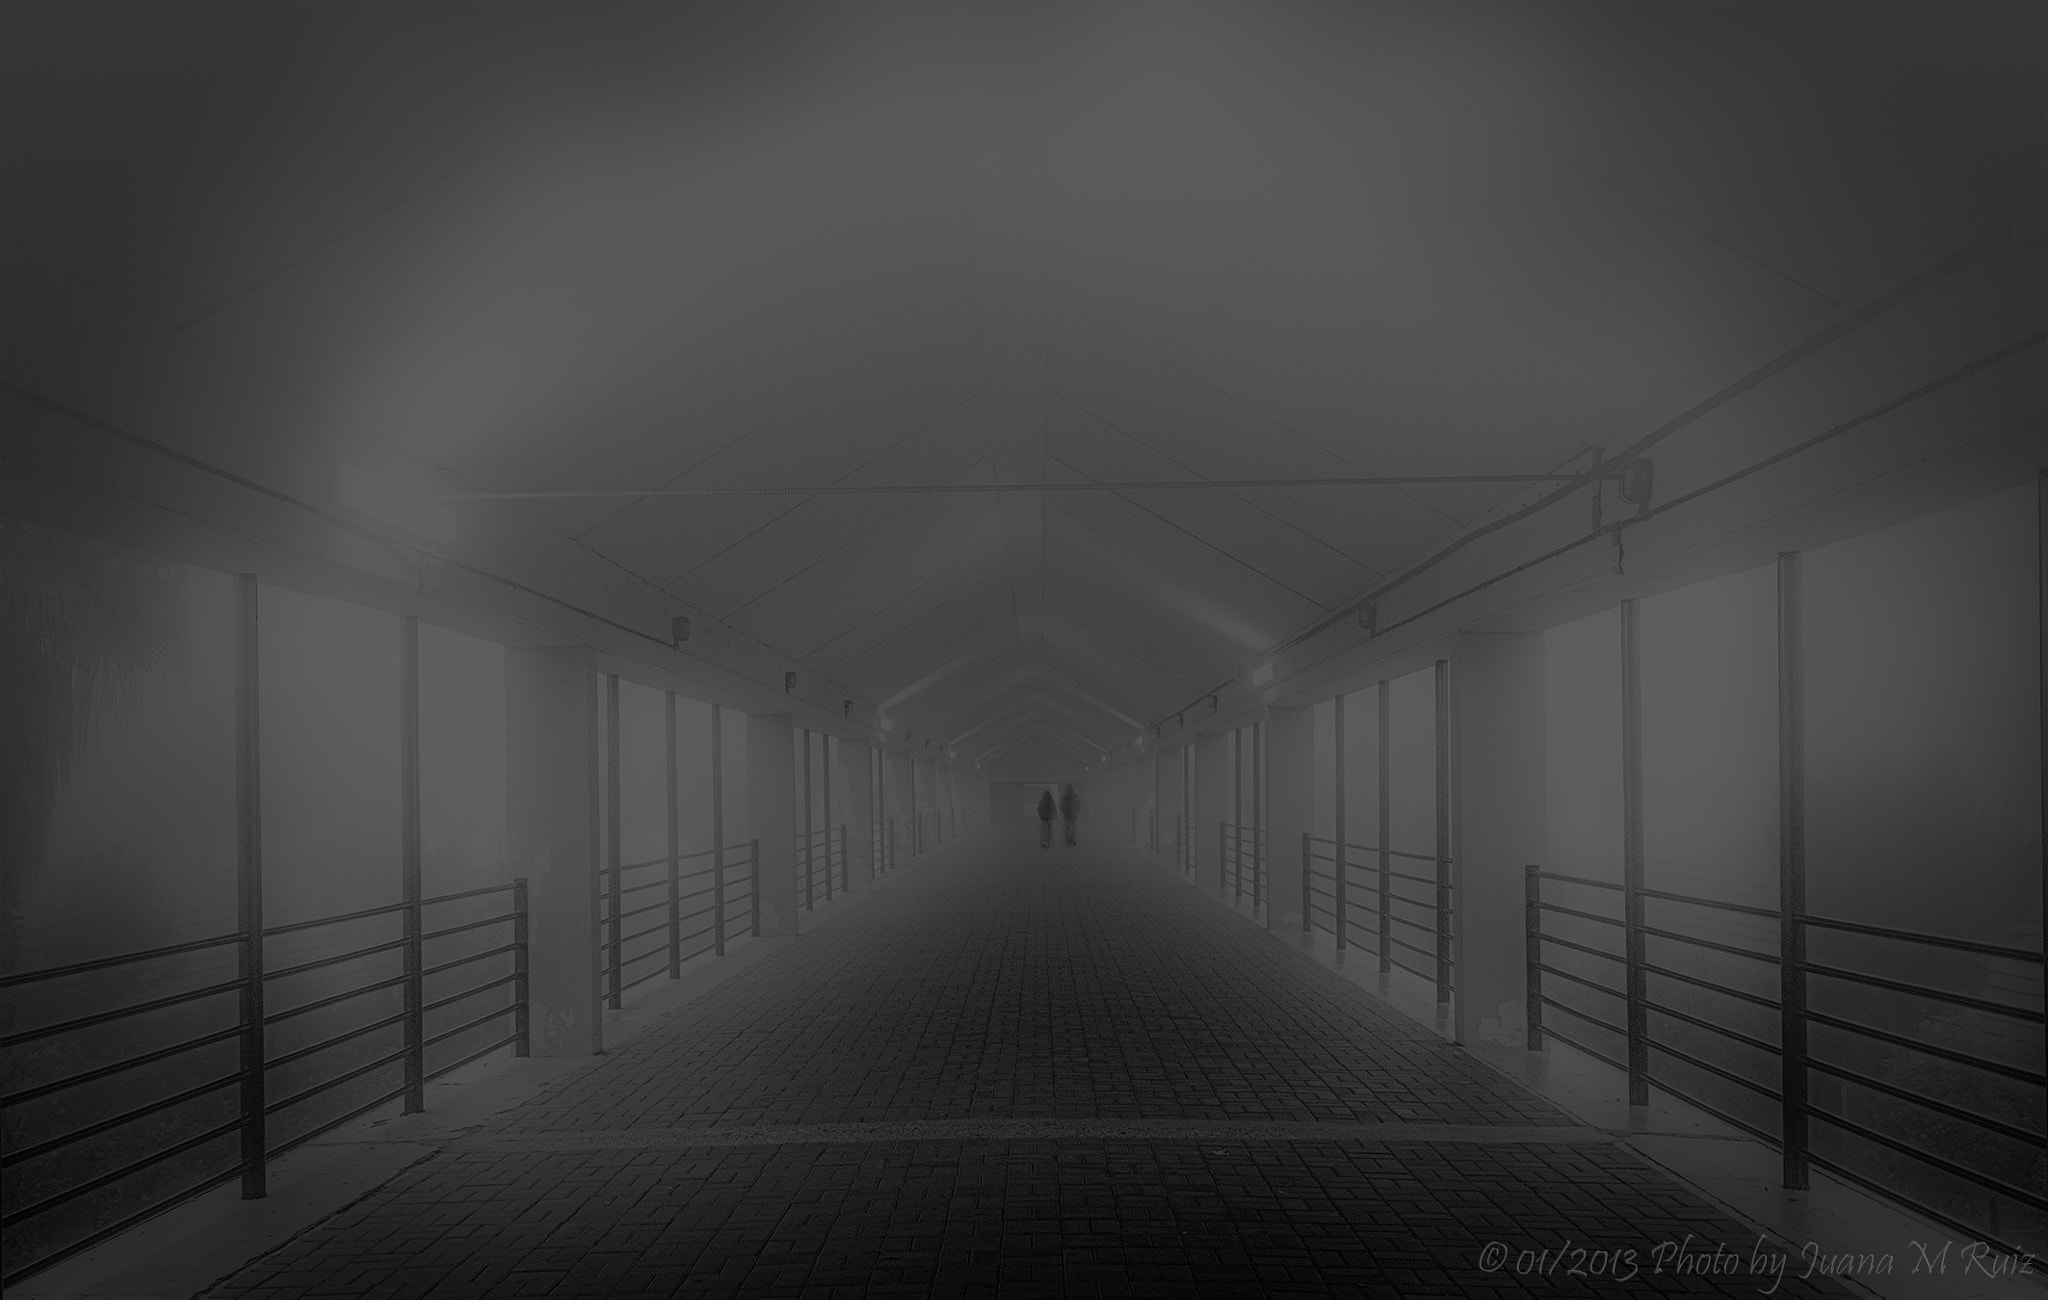 Photograph At the end of the way by Juana Maria Ruiz on 500px